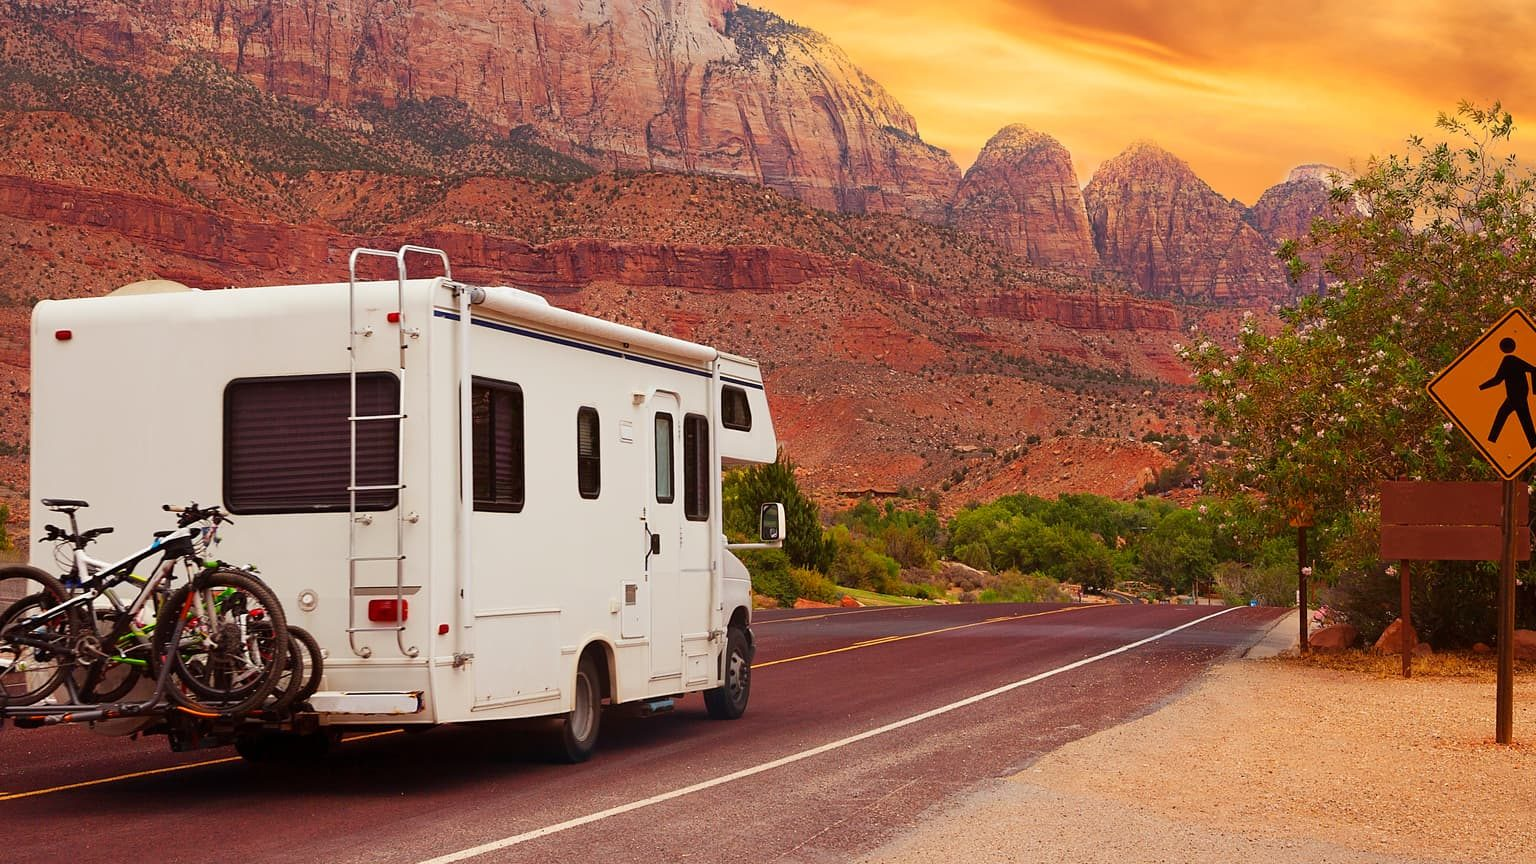 RV on the road with mountain background